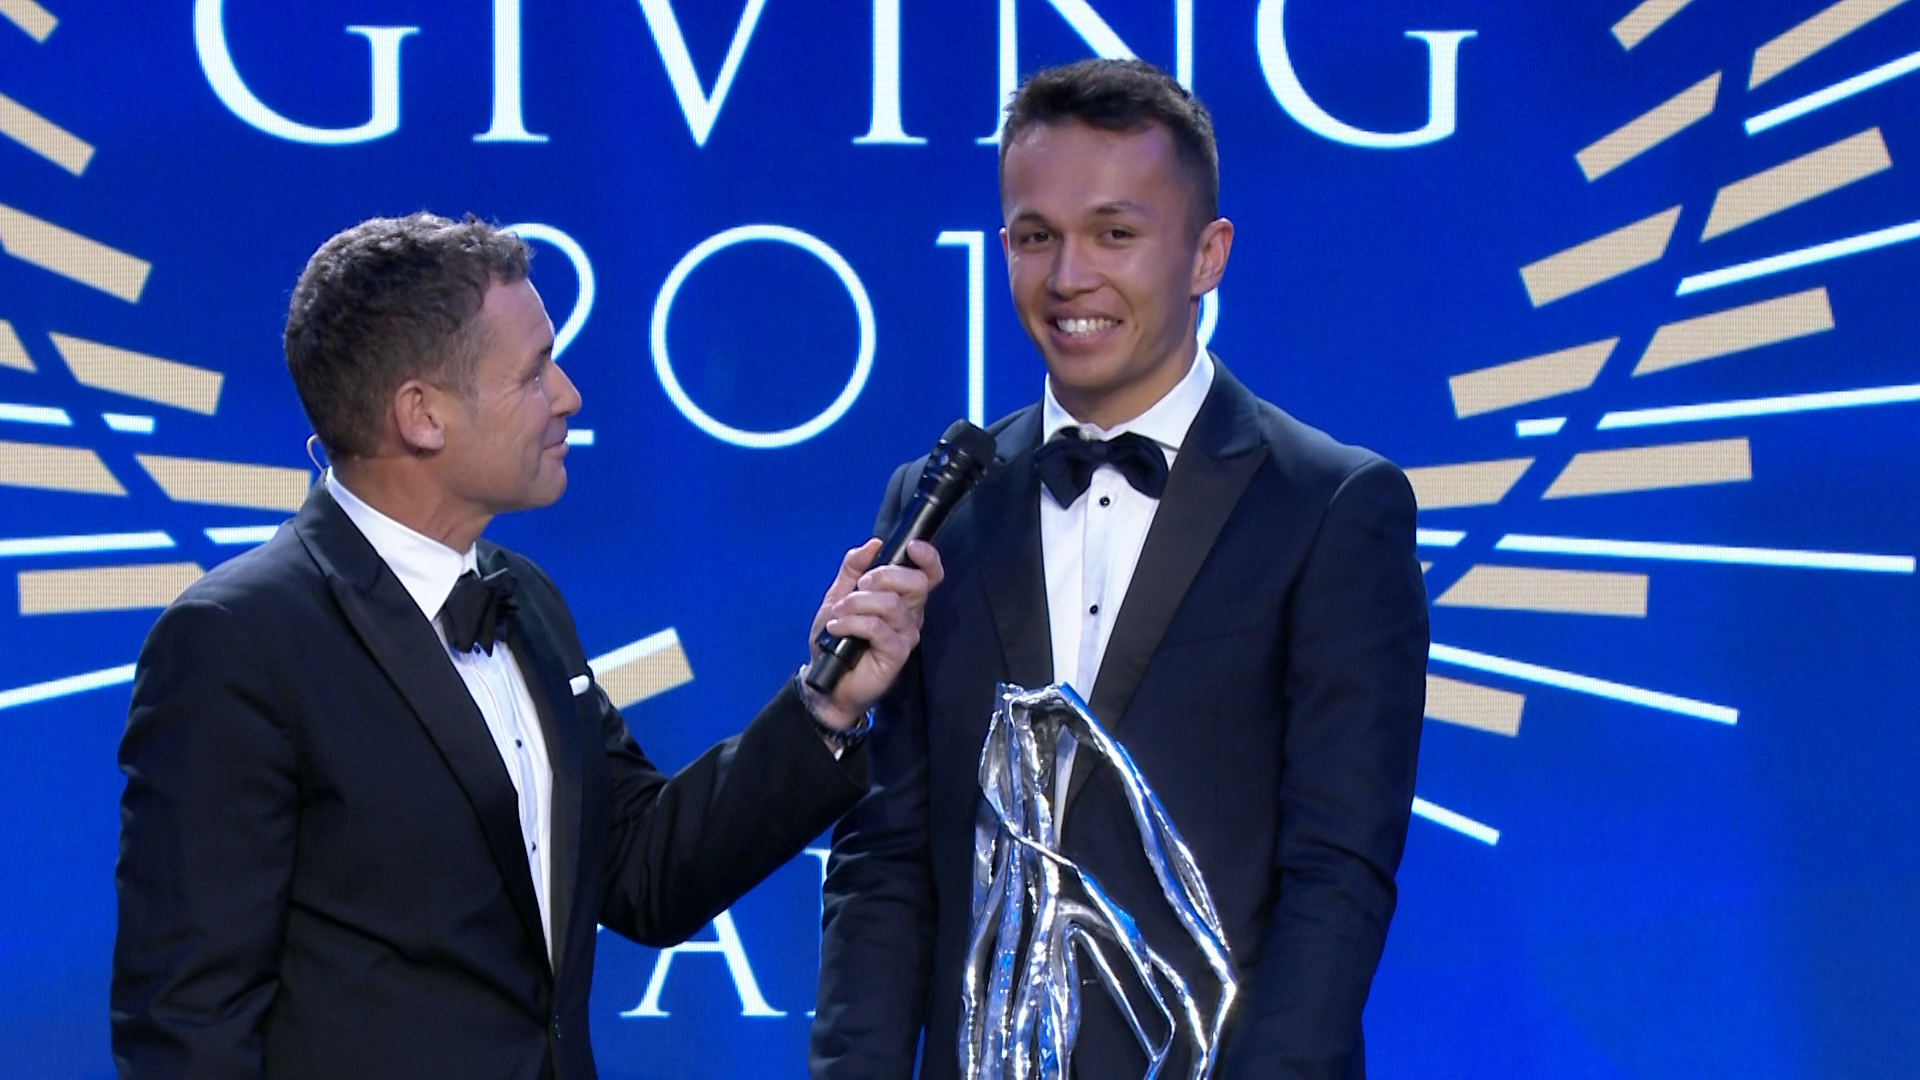 FIA Prize Giving 2019: Alexander Albon awarded Rookie of the Year